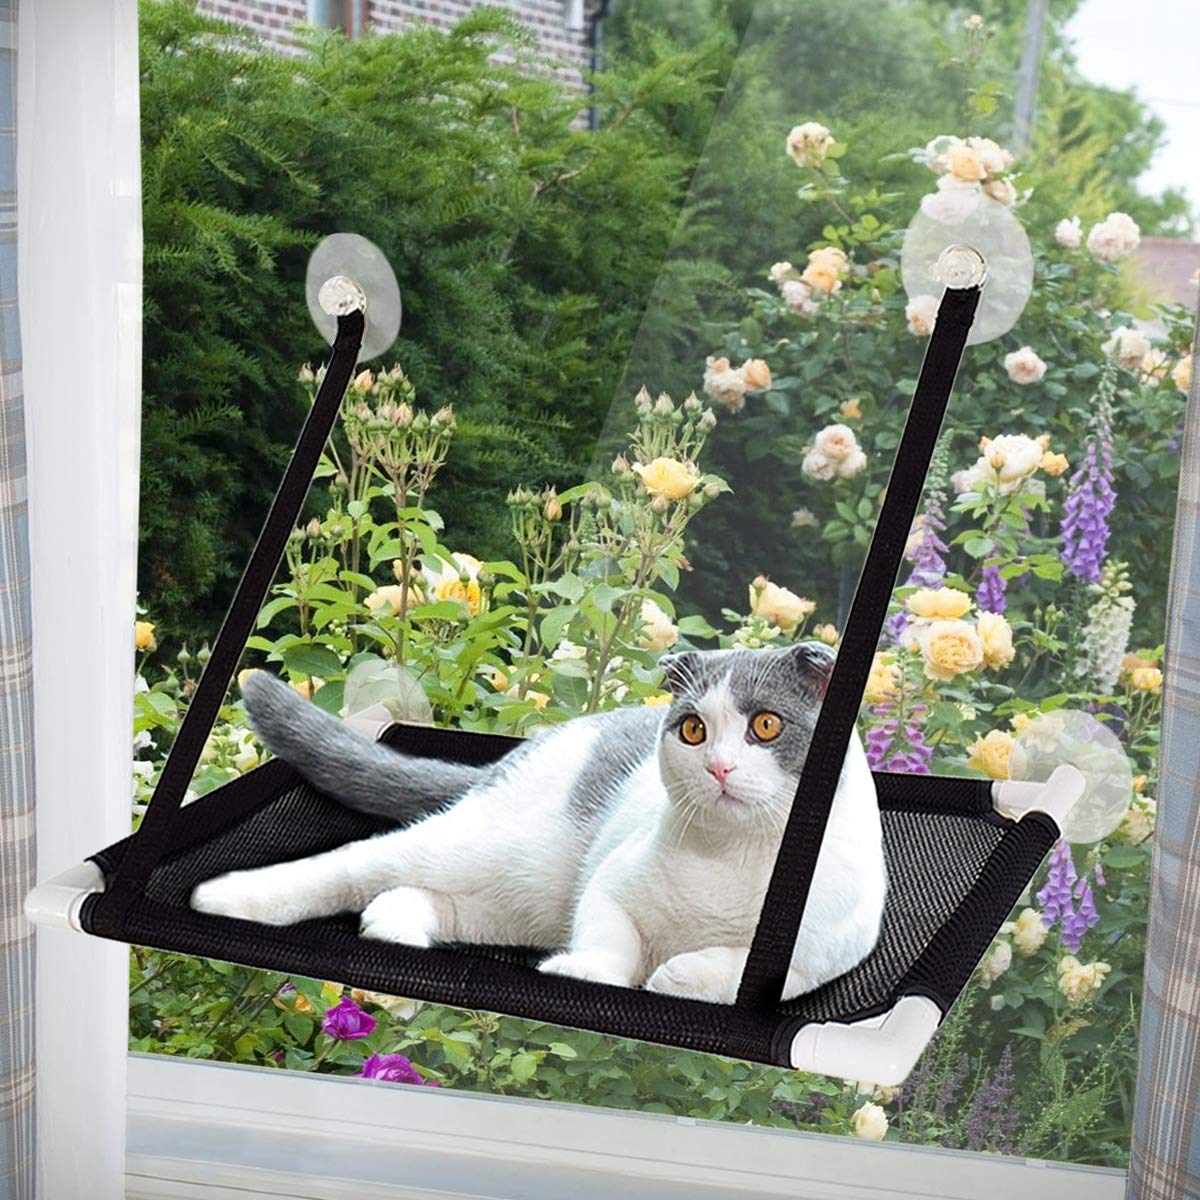 Adorrable Sunny Cat Window Perch Hammock with Stronger Suction Cups, Space Saving Mounted Pet Bed, Hanging Shelf Seat, Holds up to 22 lb,Black by Adorrable